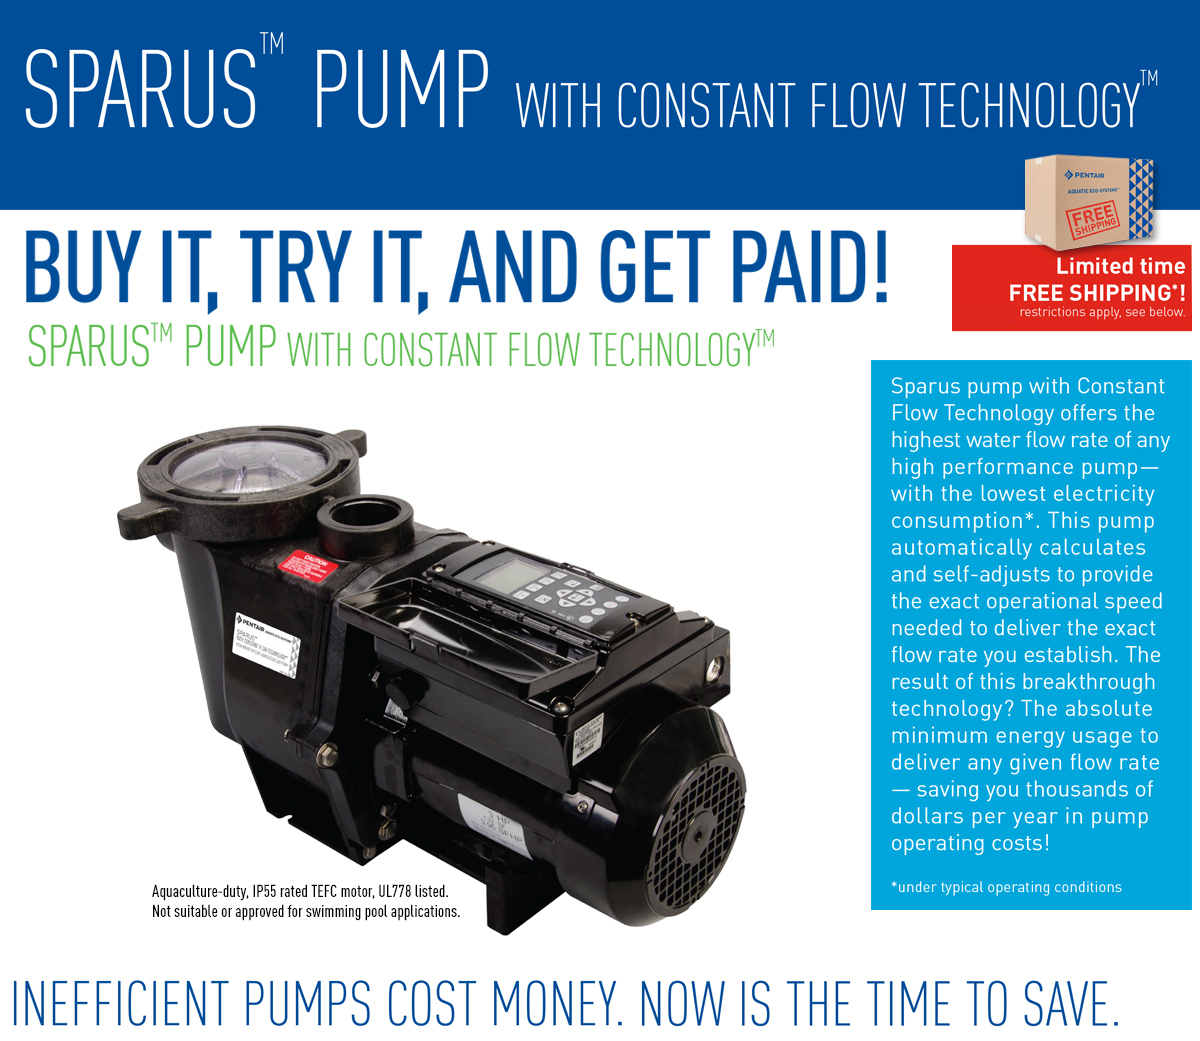 Sparus Pump with Constant Flow Technology